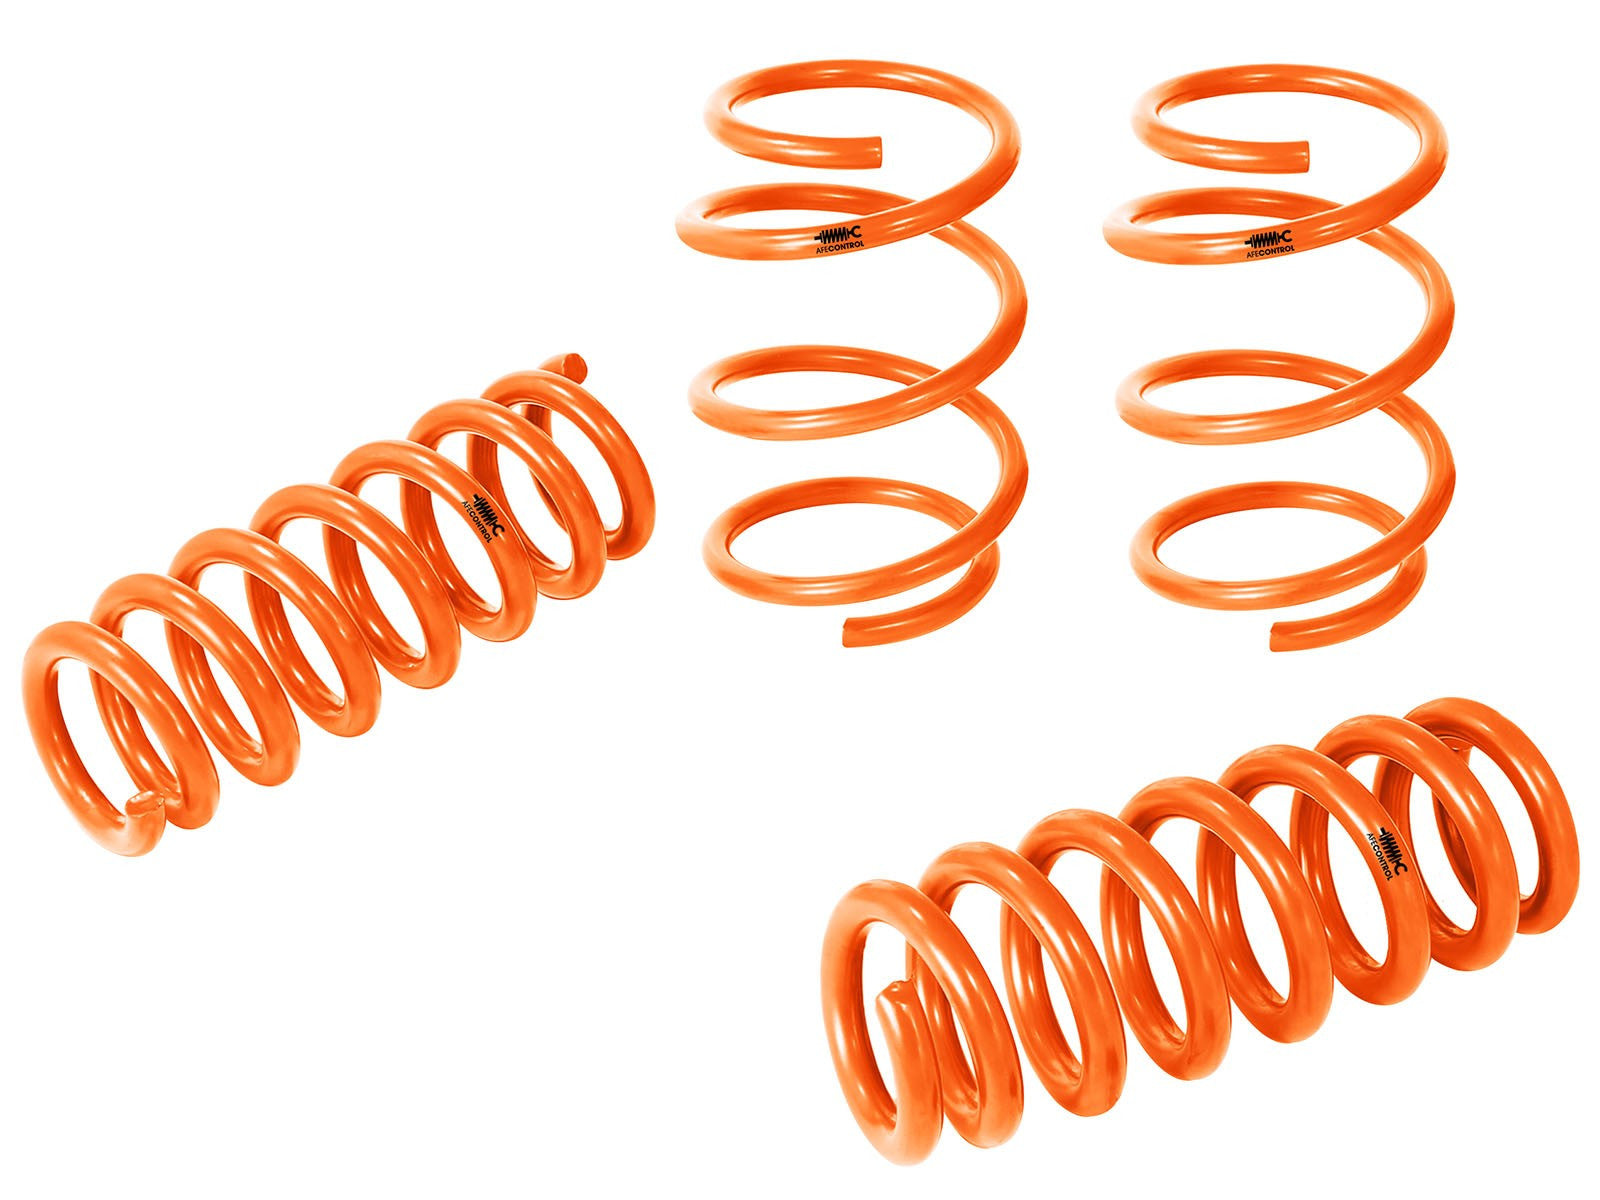 aFe POWER 228i (F20) / 328i (F30) L4-2.0L (t) N20/N26 12-16 Lowering Springs - Bimmer Performance Center